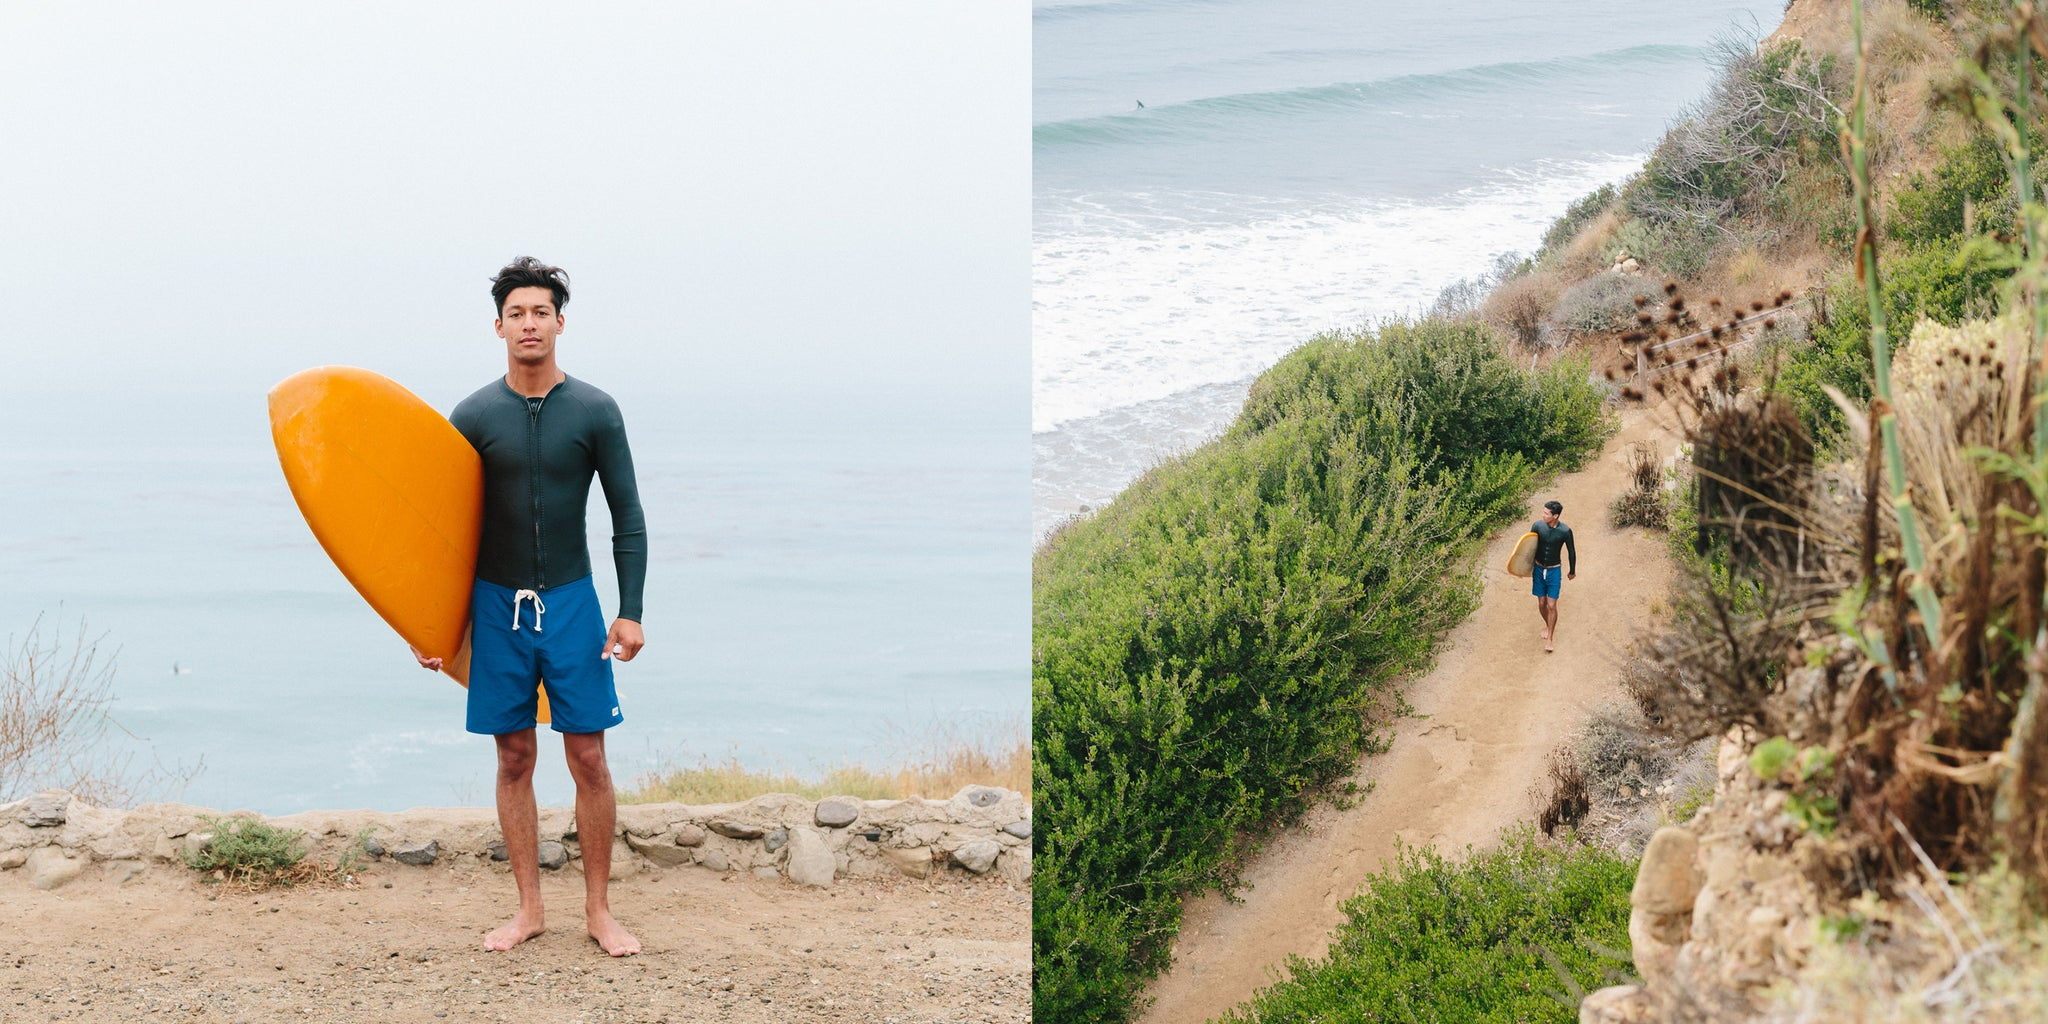 Surfing in LA by Sean Marin with Bather